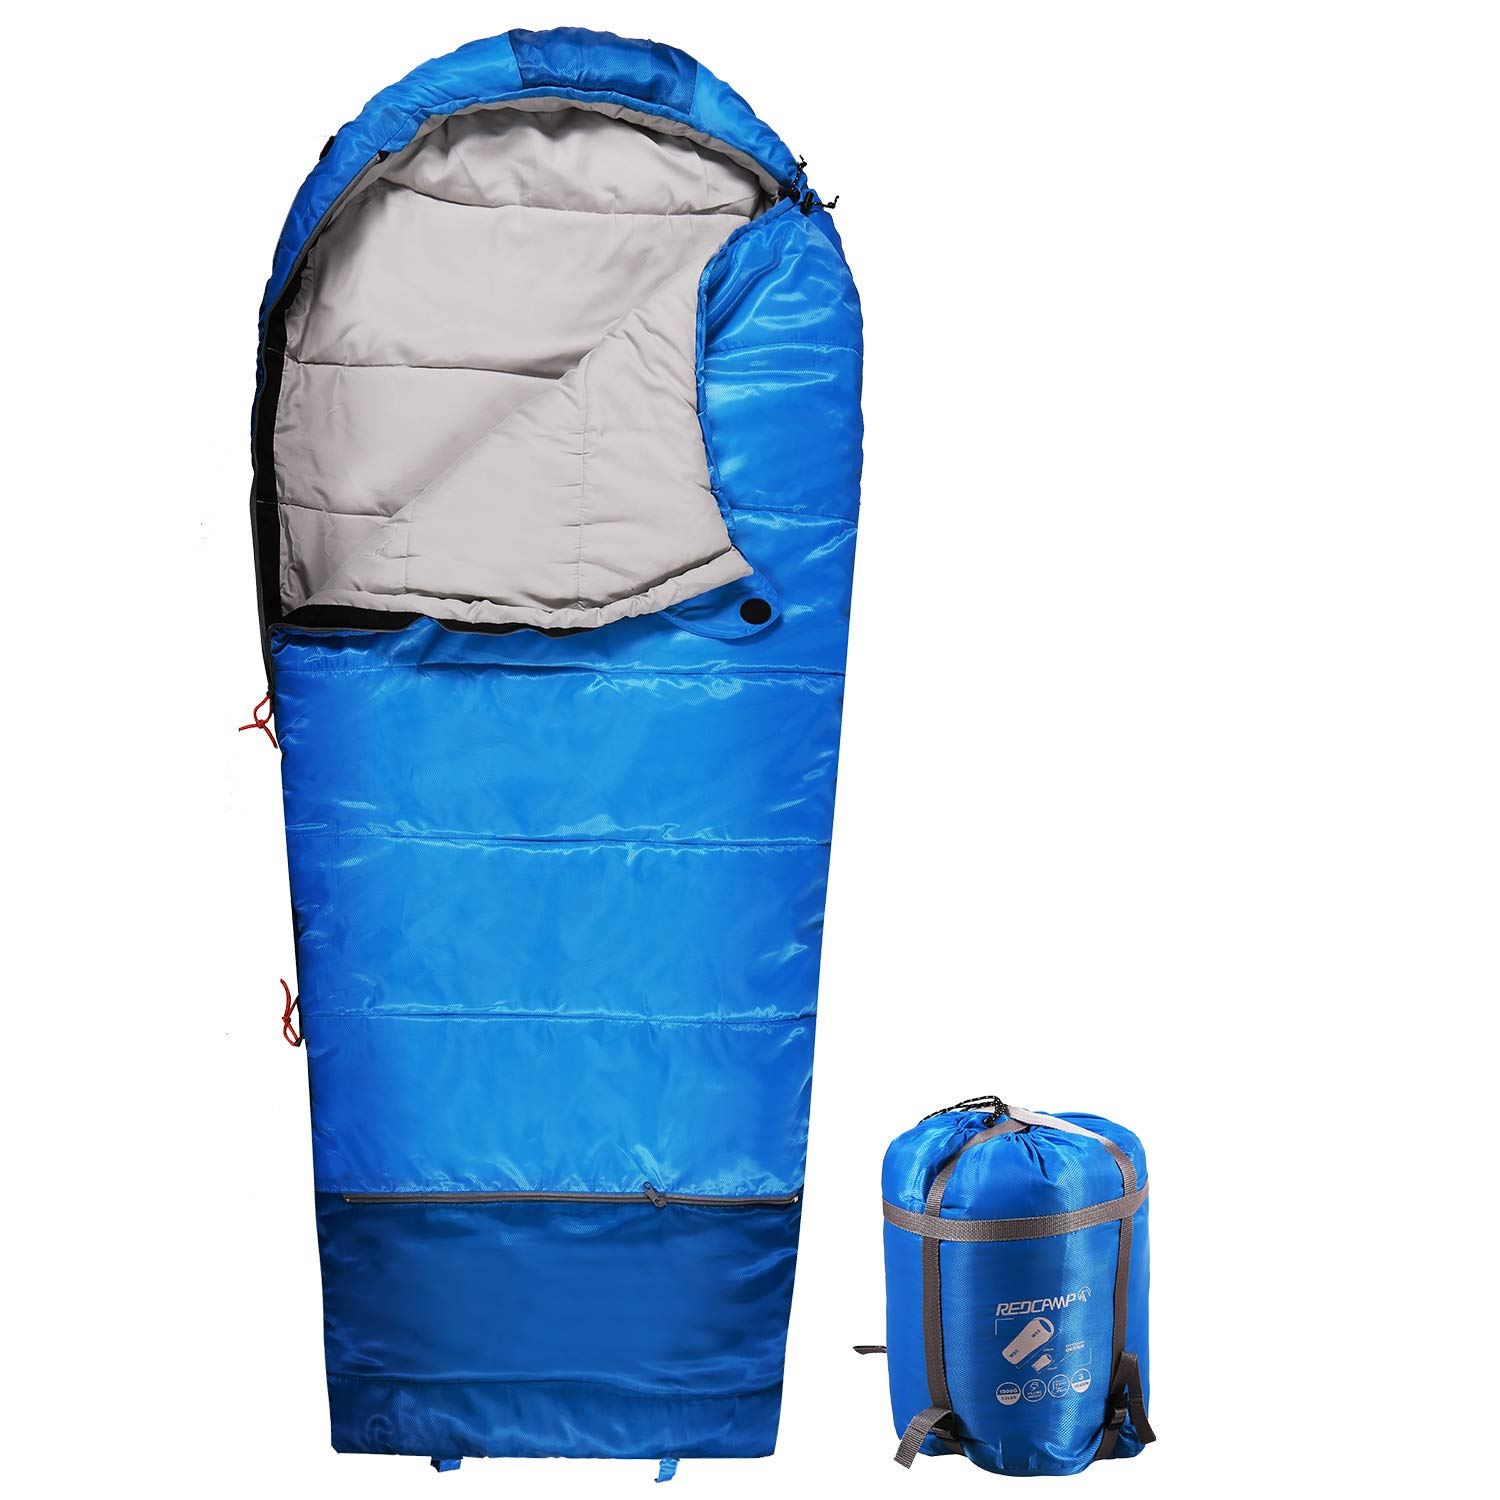 REDCAMP Kids Mummy Sleeping Bag for Camping Zipped Small, 32 Degree All Season Cold Weather Fit Boys,Girls & Teens (Blue with 3.3lbs Filling) by REDCAMP